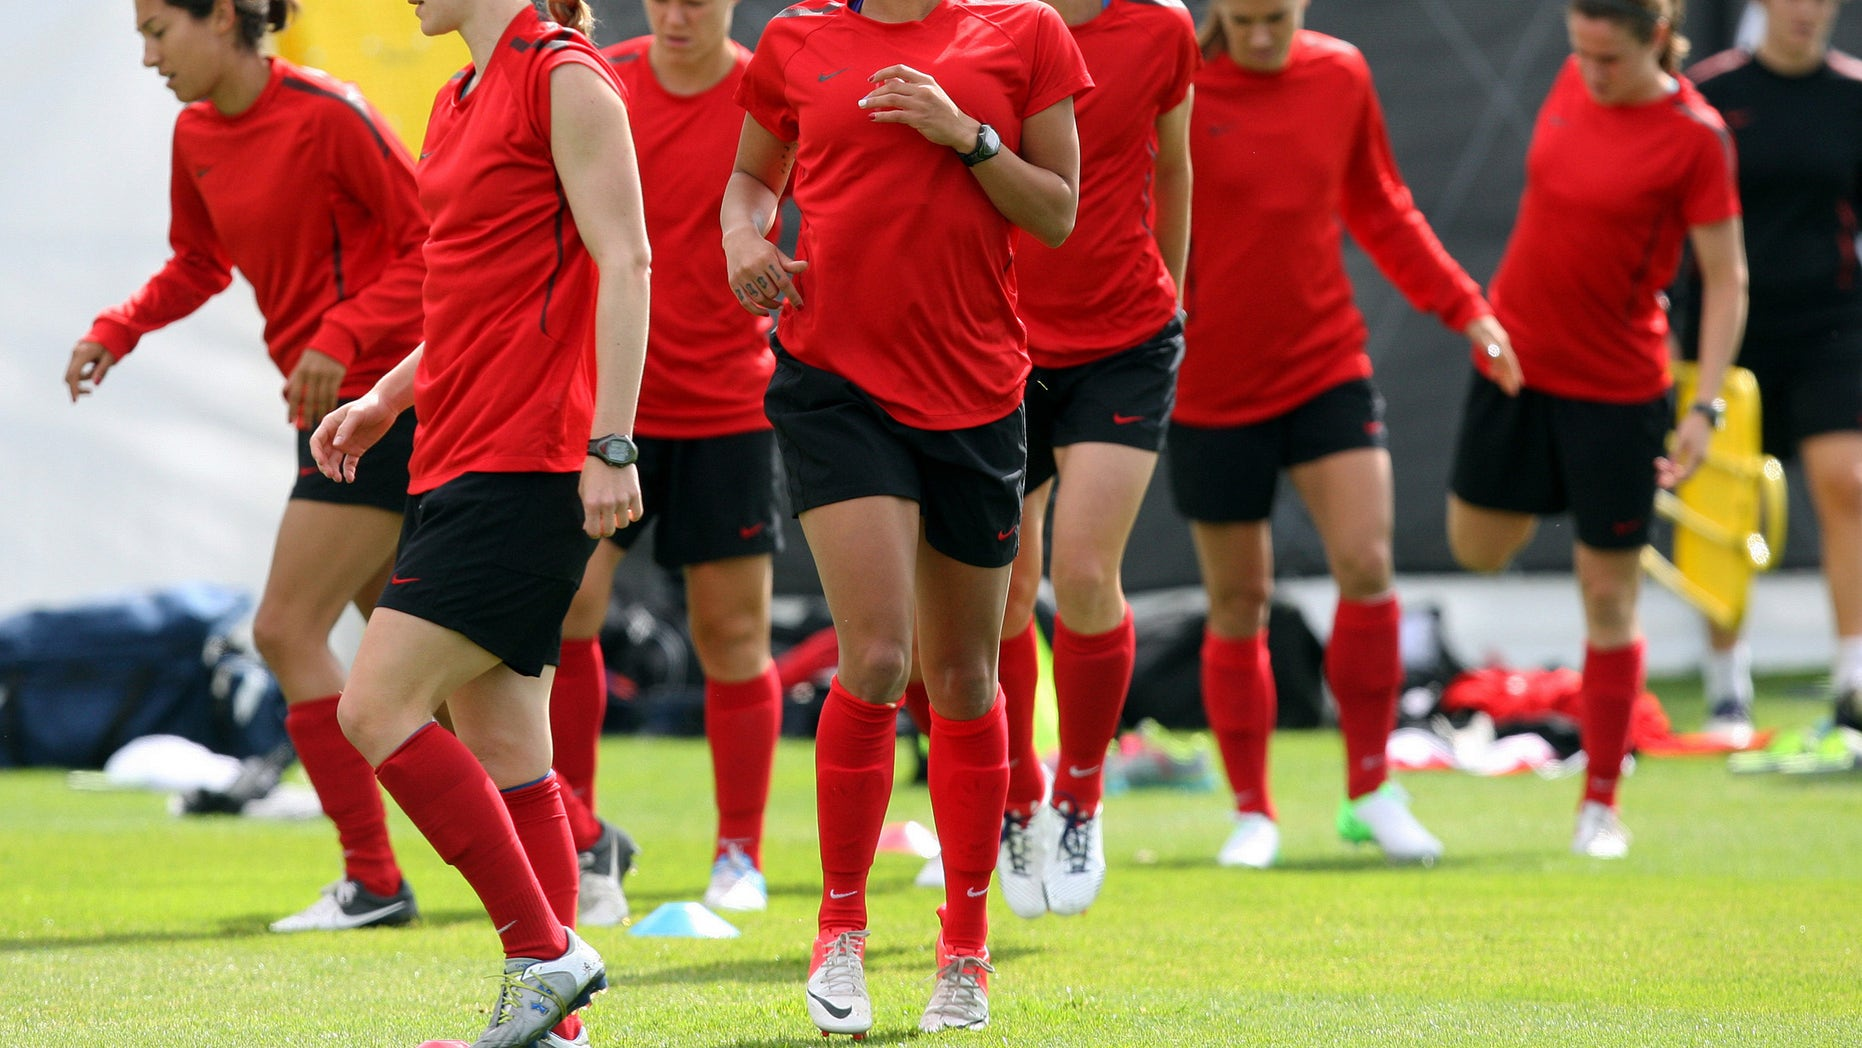 United States' Sydney Leroux, center, trains during soccer practice for the 2012 London Summer Olympics at Cochrane Park in Newcastle, England, on Thursday, Aug. 2, 2012. The United States will face New Zealand in the women's quarter final soccer match on Friday. (AP Photo/Scott Heppell)